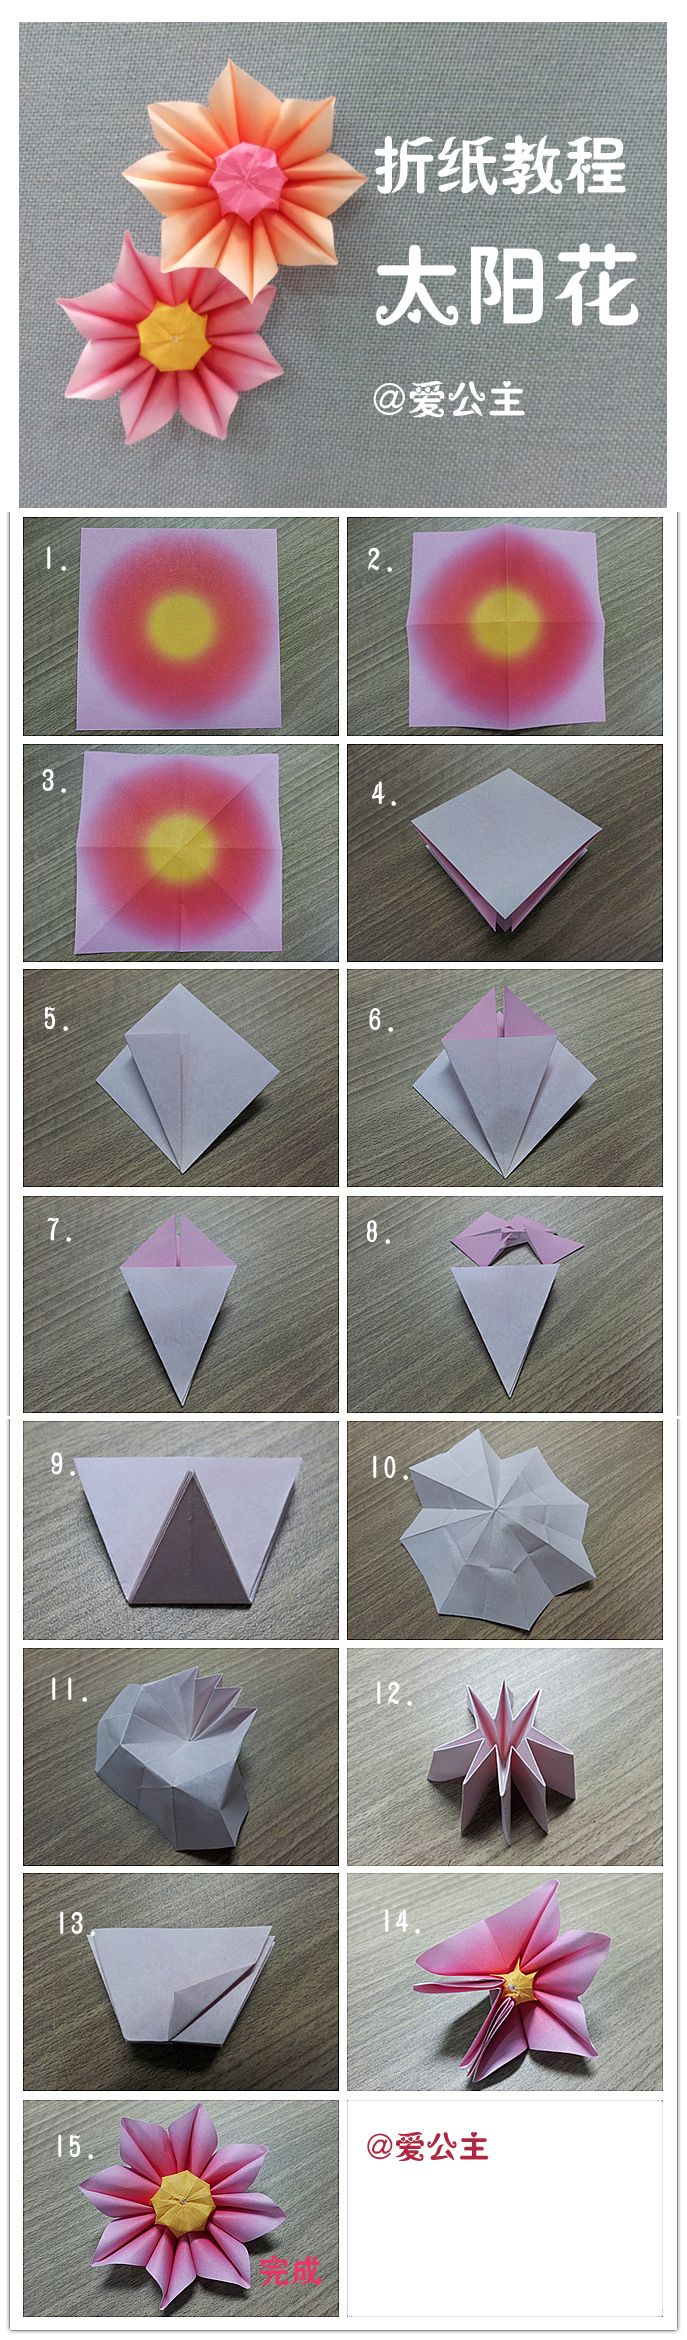 Making Beautiful Variations Of Origami Flower Flowers Instructions Diagrams Diy